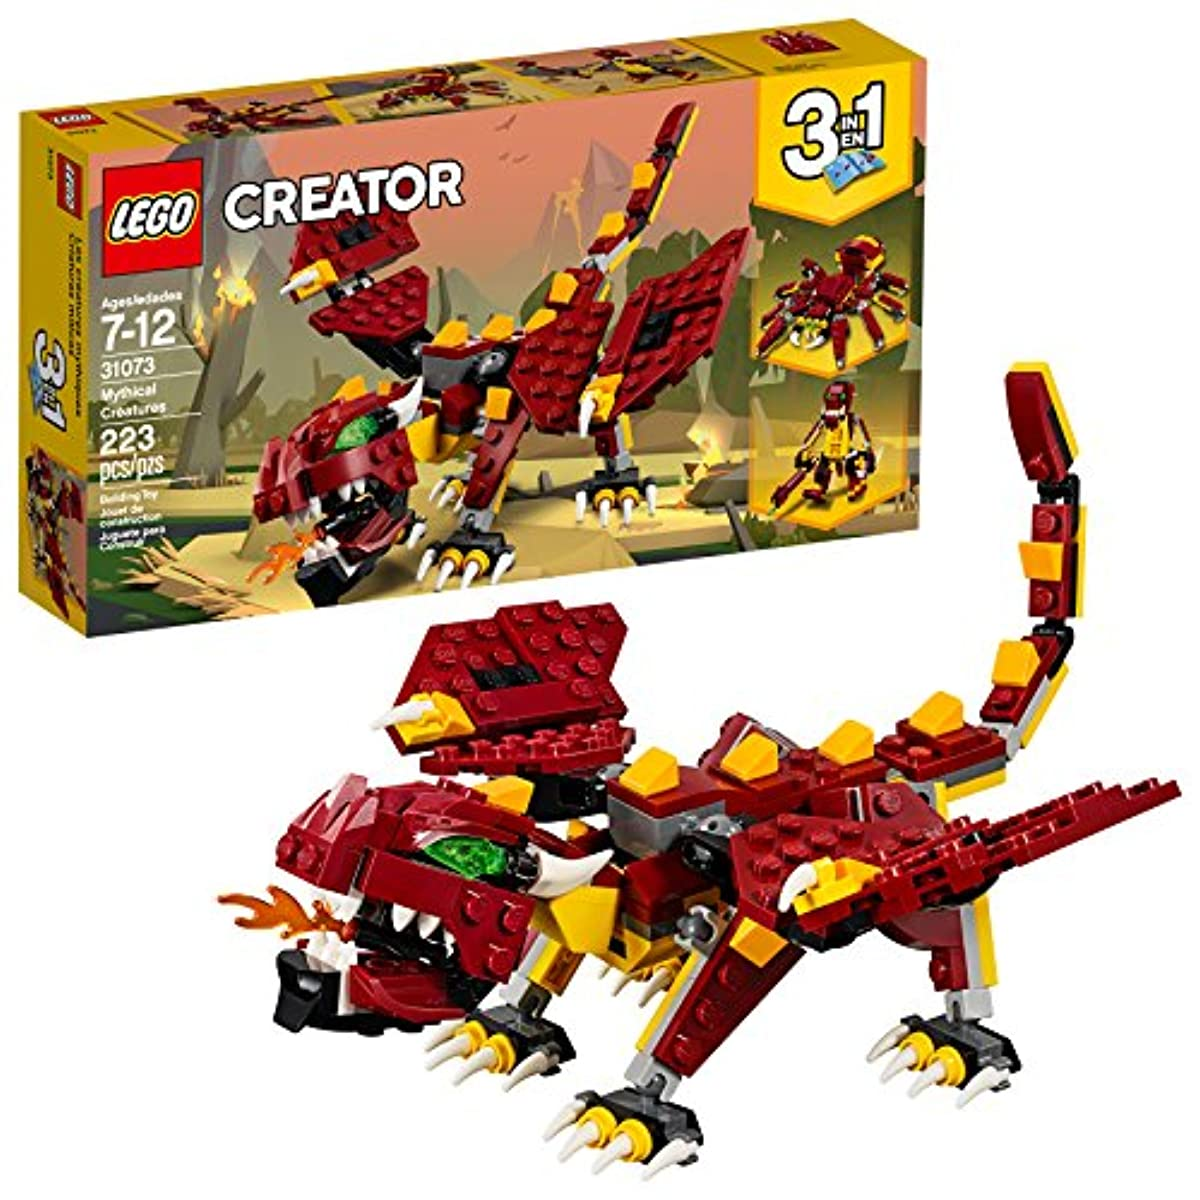 [레고 크리에이터] LEGO Creator 3in1 Mythical Creatures 31073 Building Kit (223 Piece)